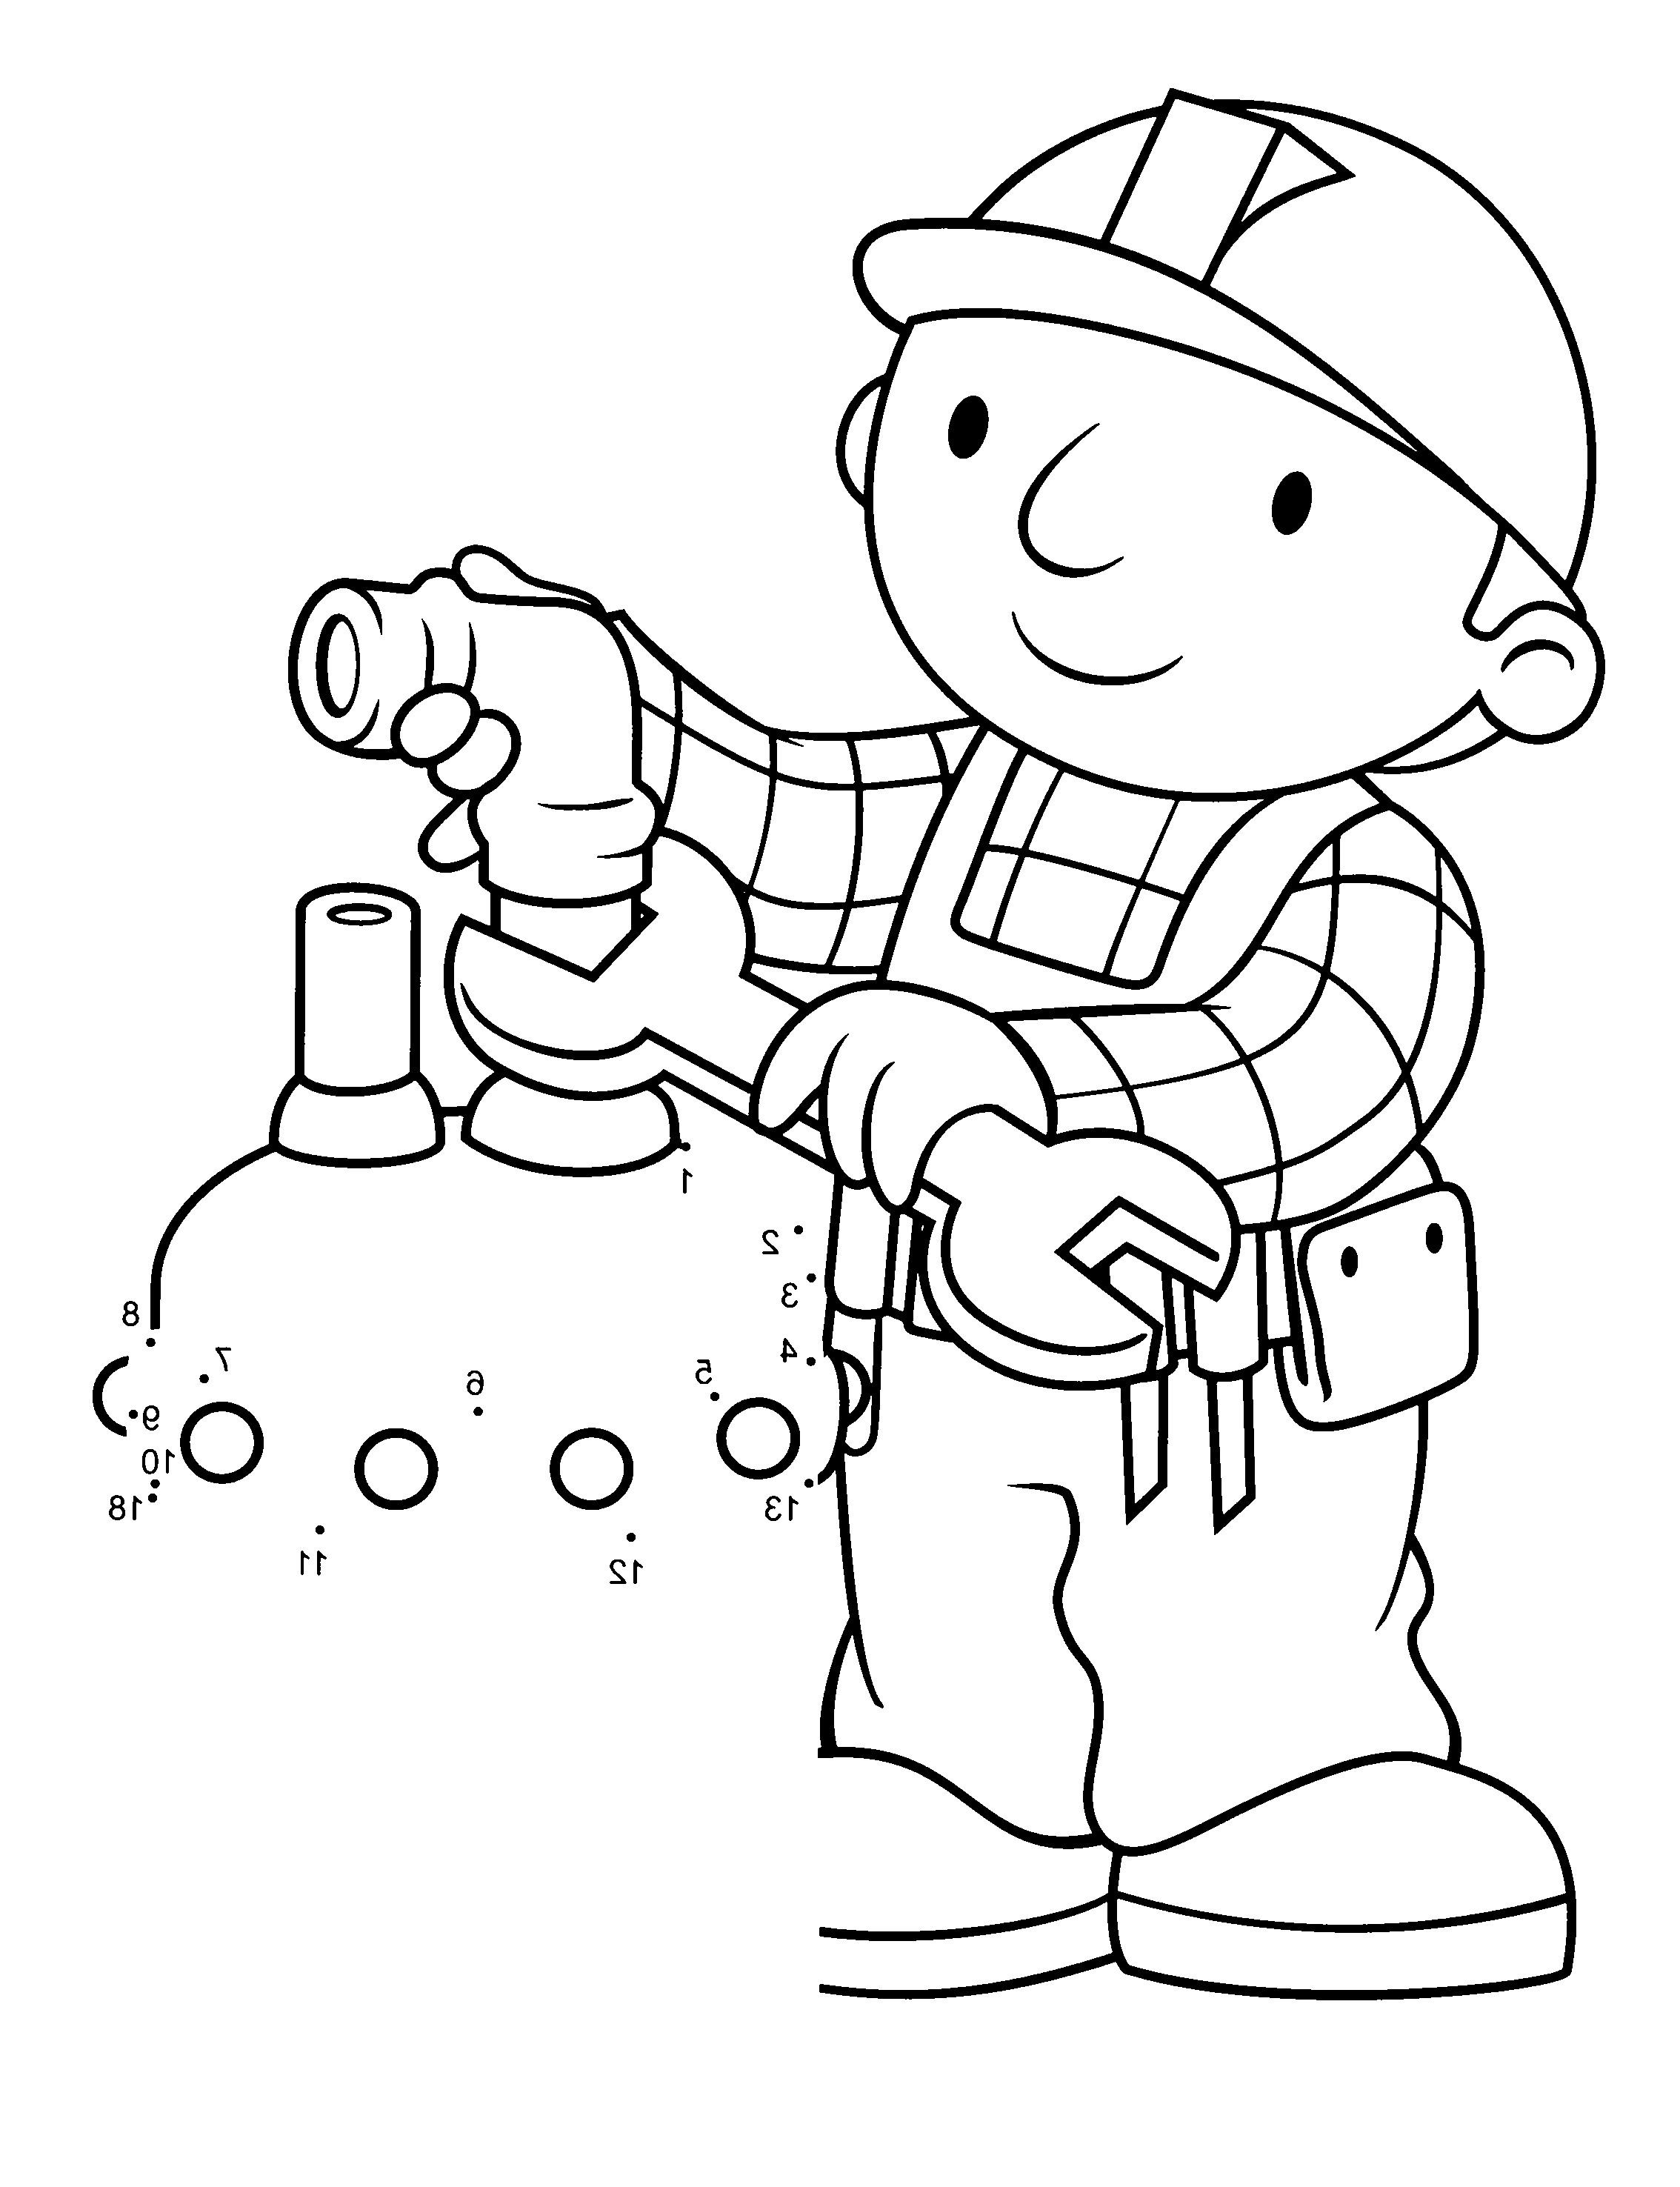 Bob The Builder Fix The Tap Water Coloring For Kids